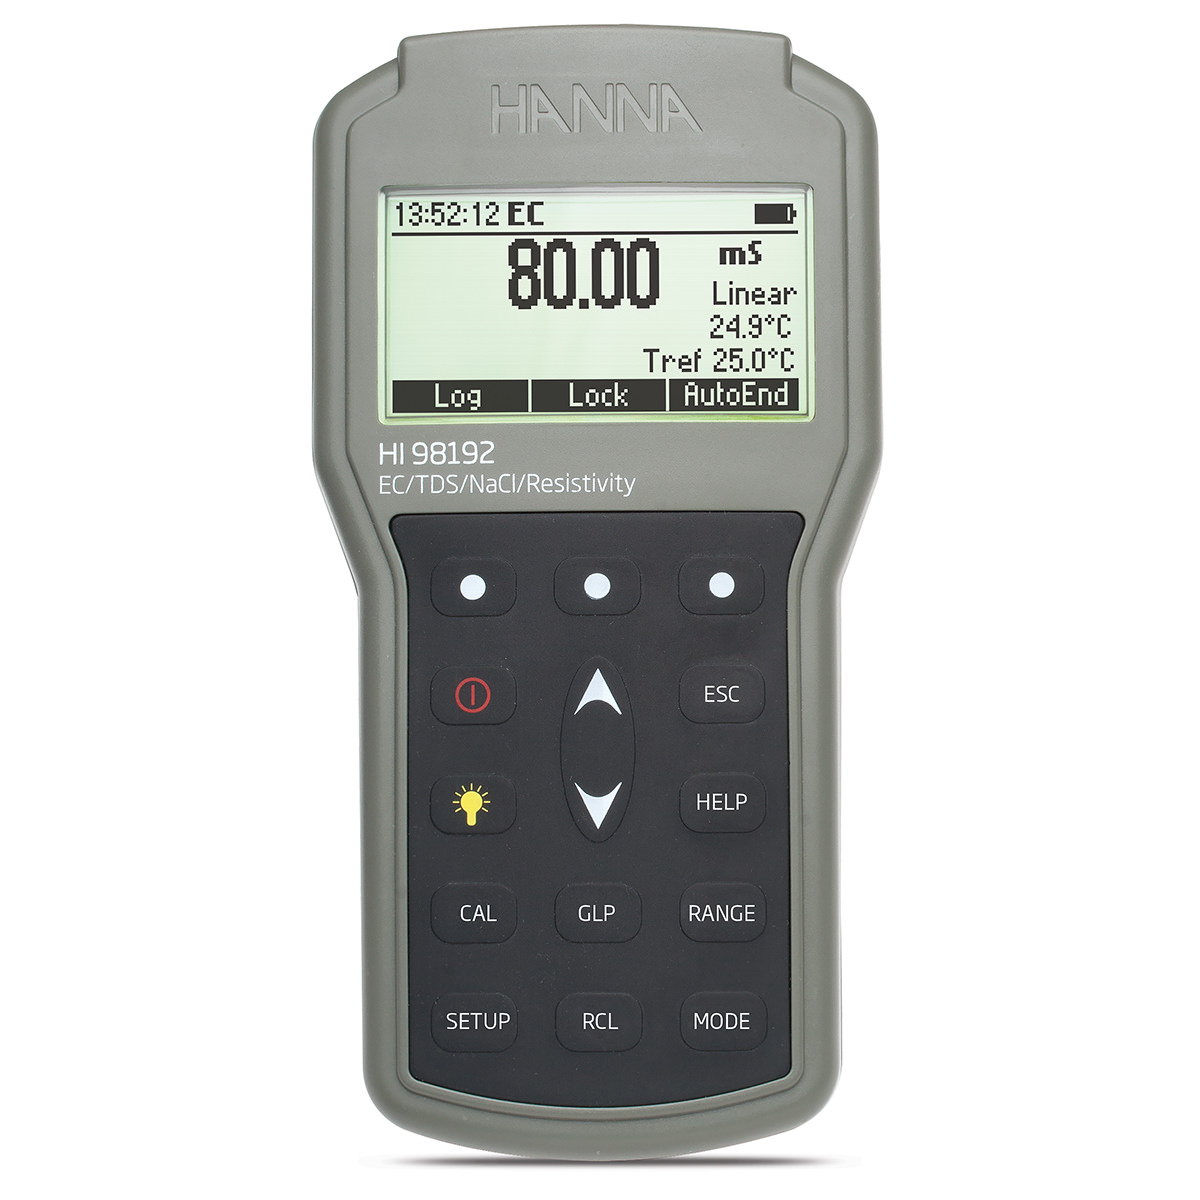 Waterproof Portable EC/TDS/Resistivity/Salinity Meter - HI98192